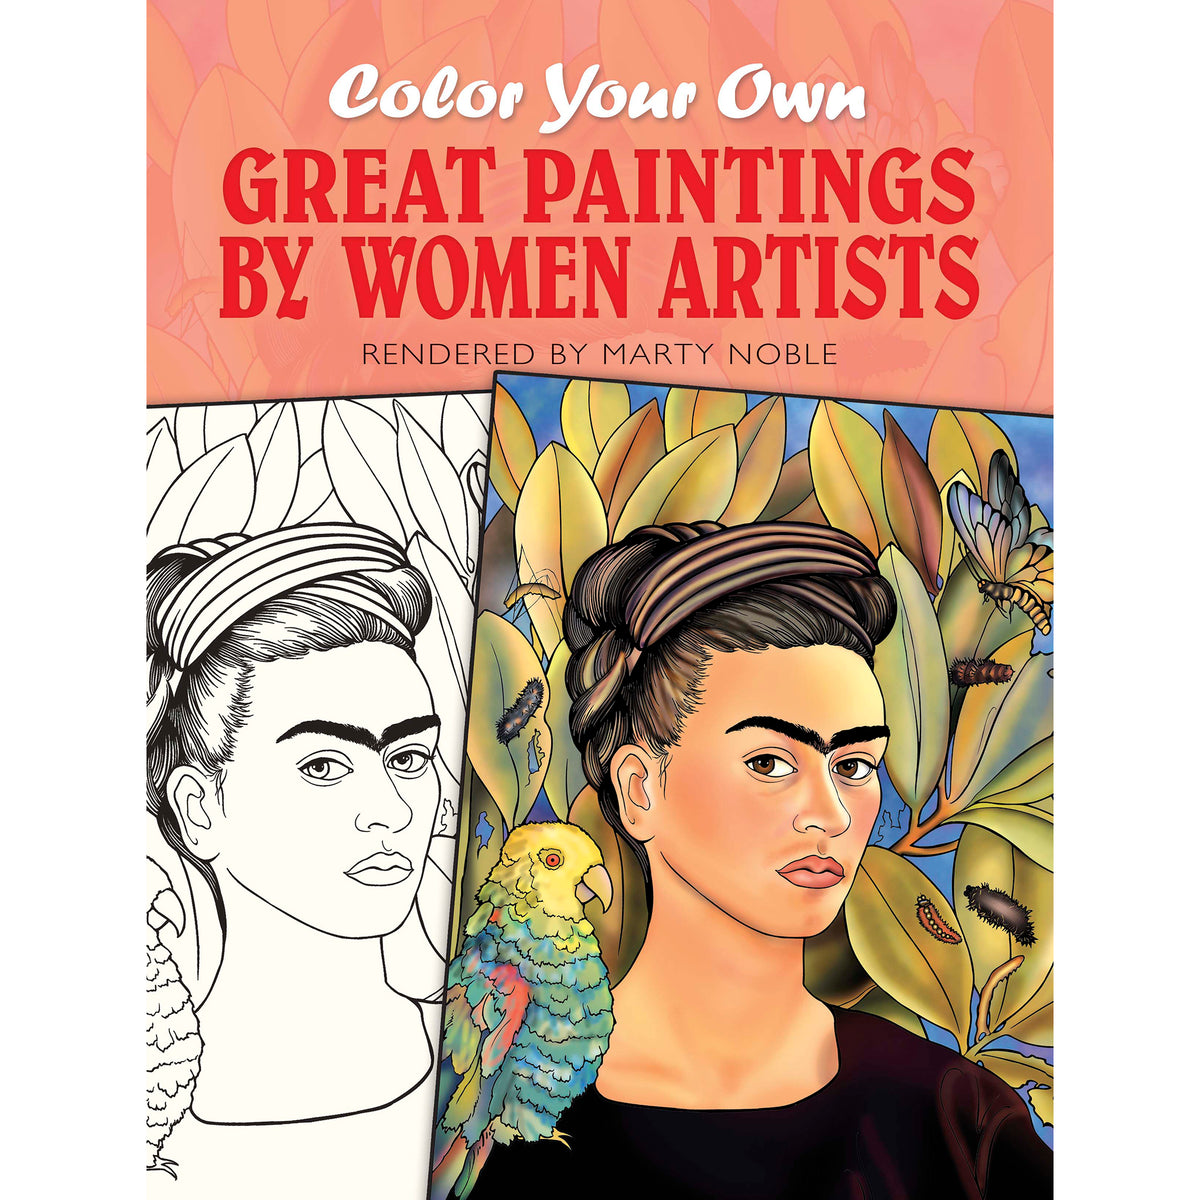 Great Paintings by Women Artists -Coloring Book  | Getty Store